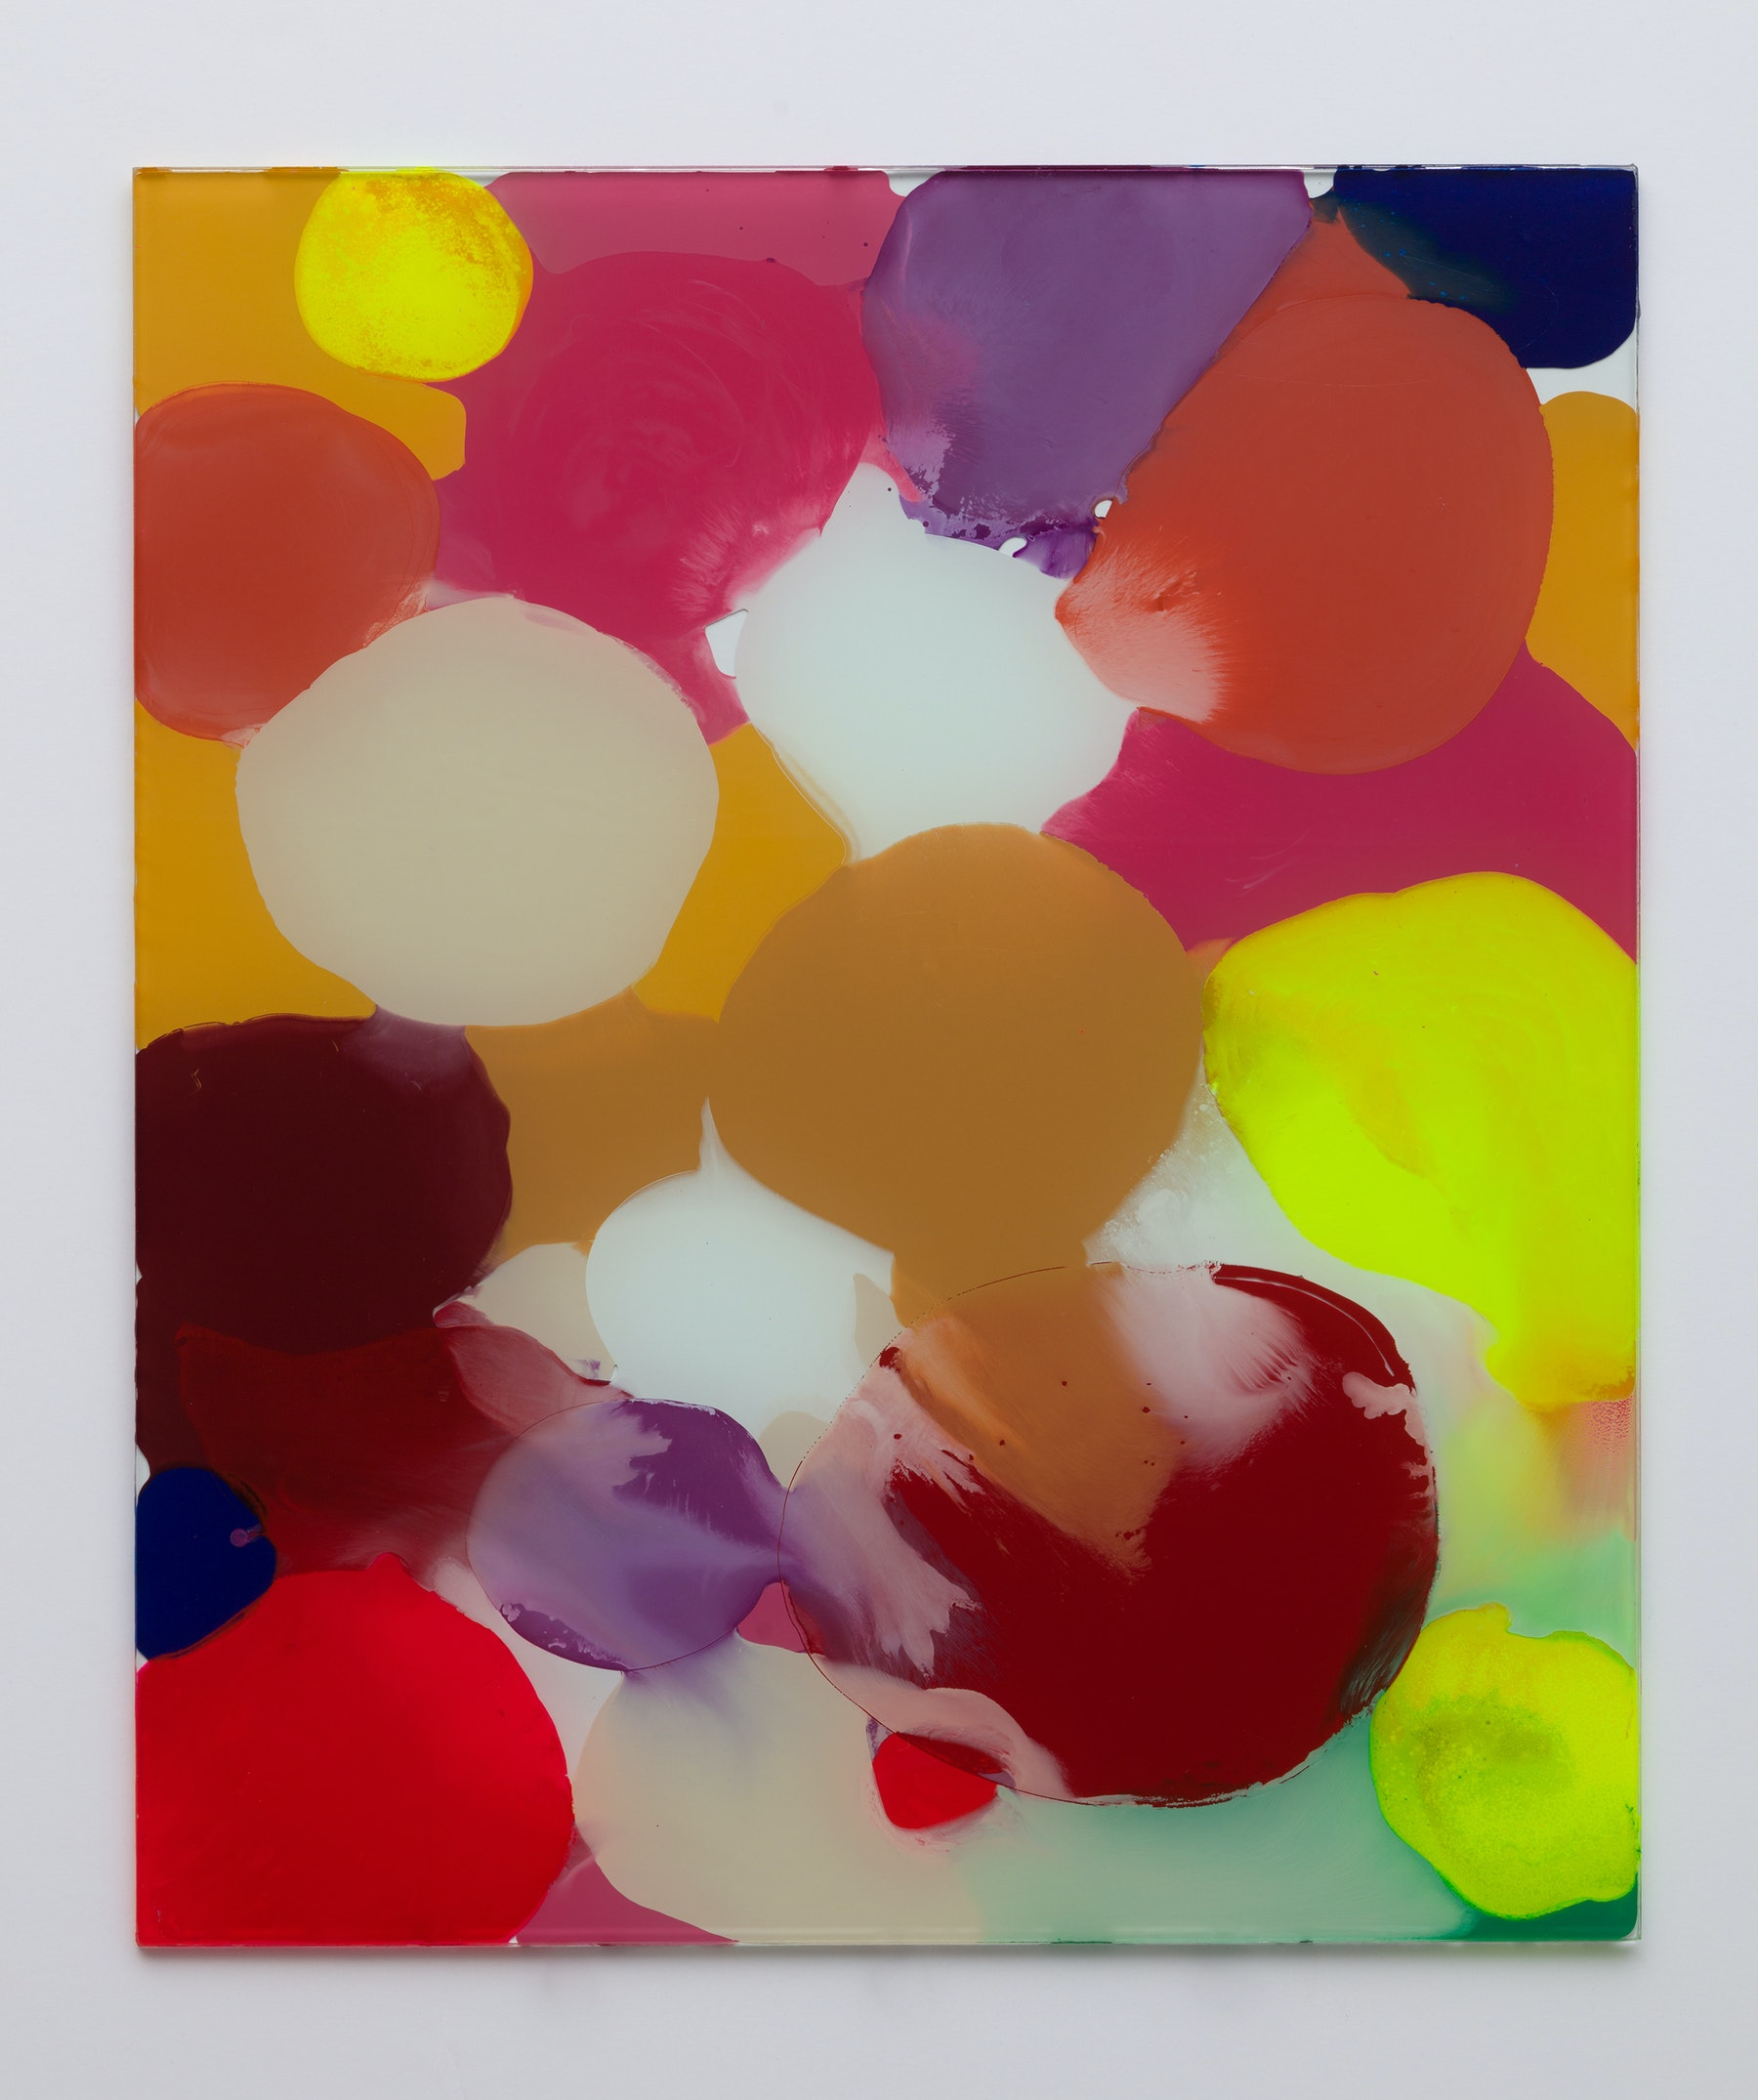 """Yunhee Min """"Up Close in Distance (variation study a2),"""" 2018 Enamel on laminated glass 30 x 25"""" [HxW] (76.2 x 63.5 cm) Inventory #MIN343 Courtesy of the artist and Vielmetter Los Angeles Photo credit: Brica Wilcox"""